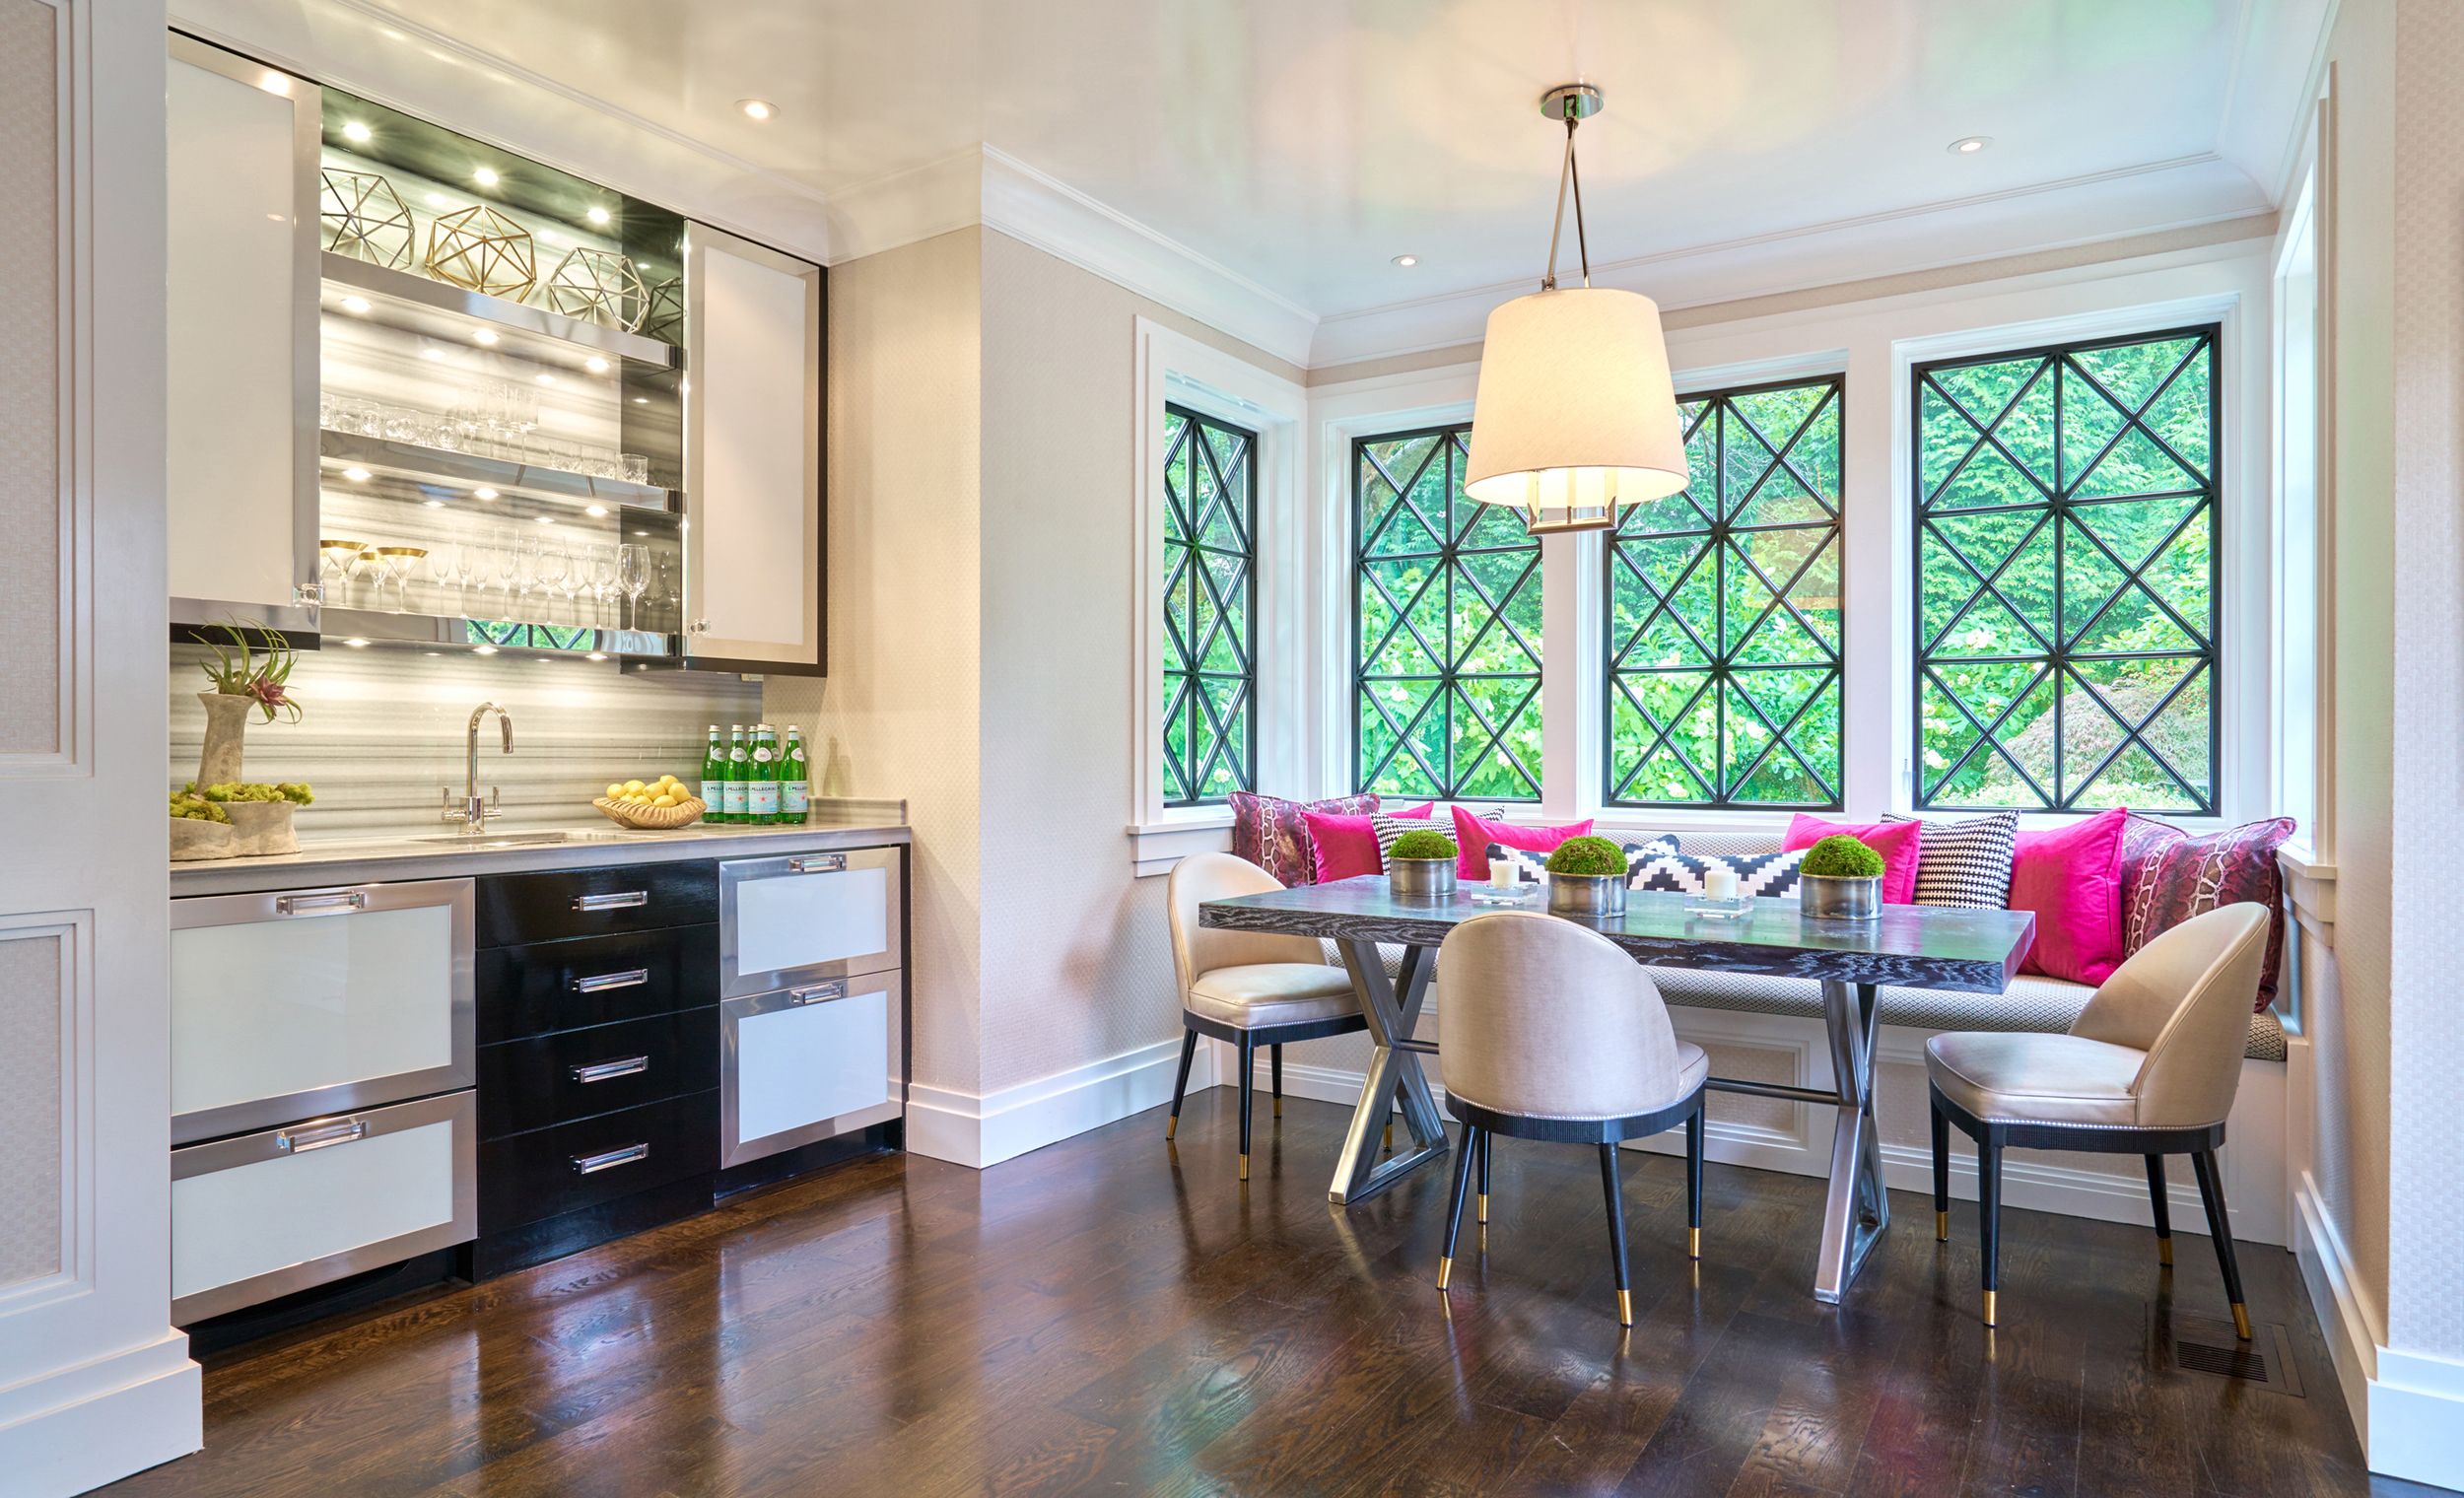 Intricate window designs define this alluring dining area.